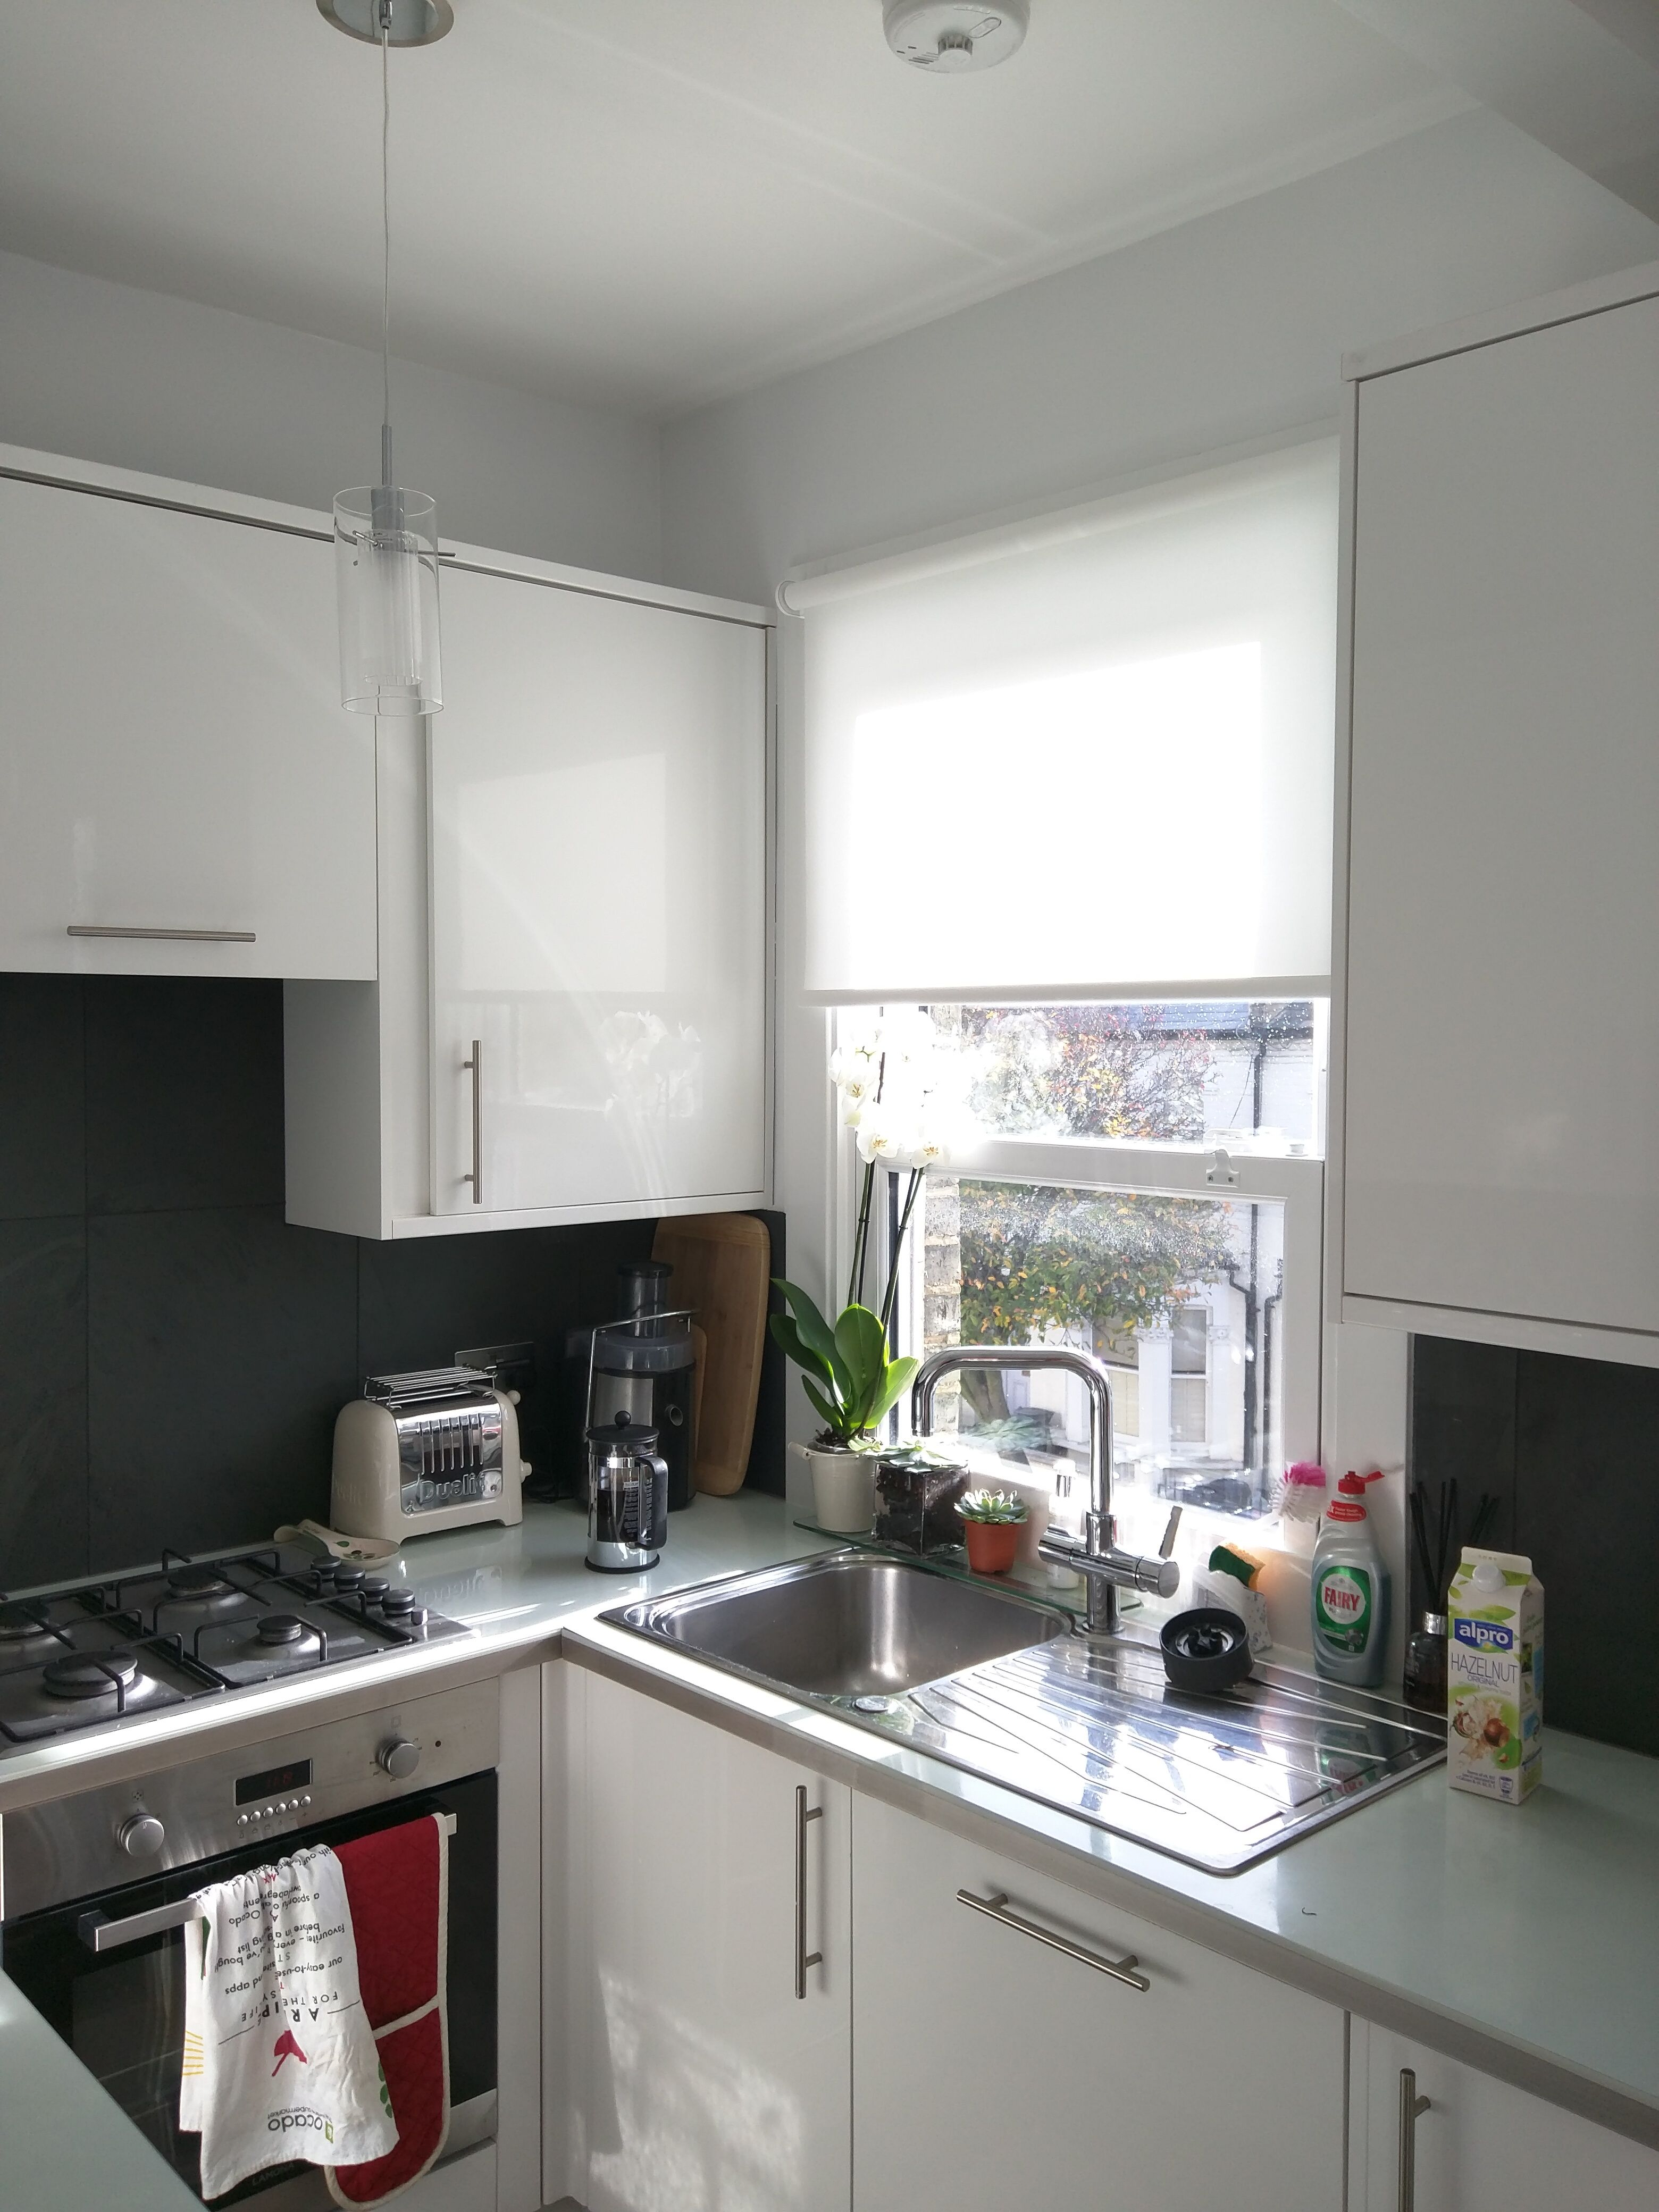 Roller blind from our Basics range fitted to kitchen